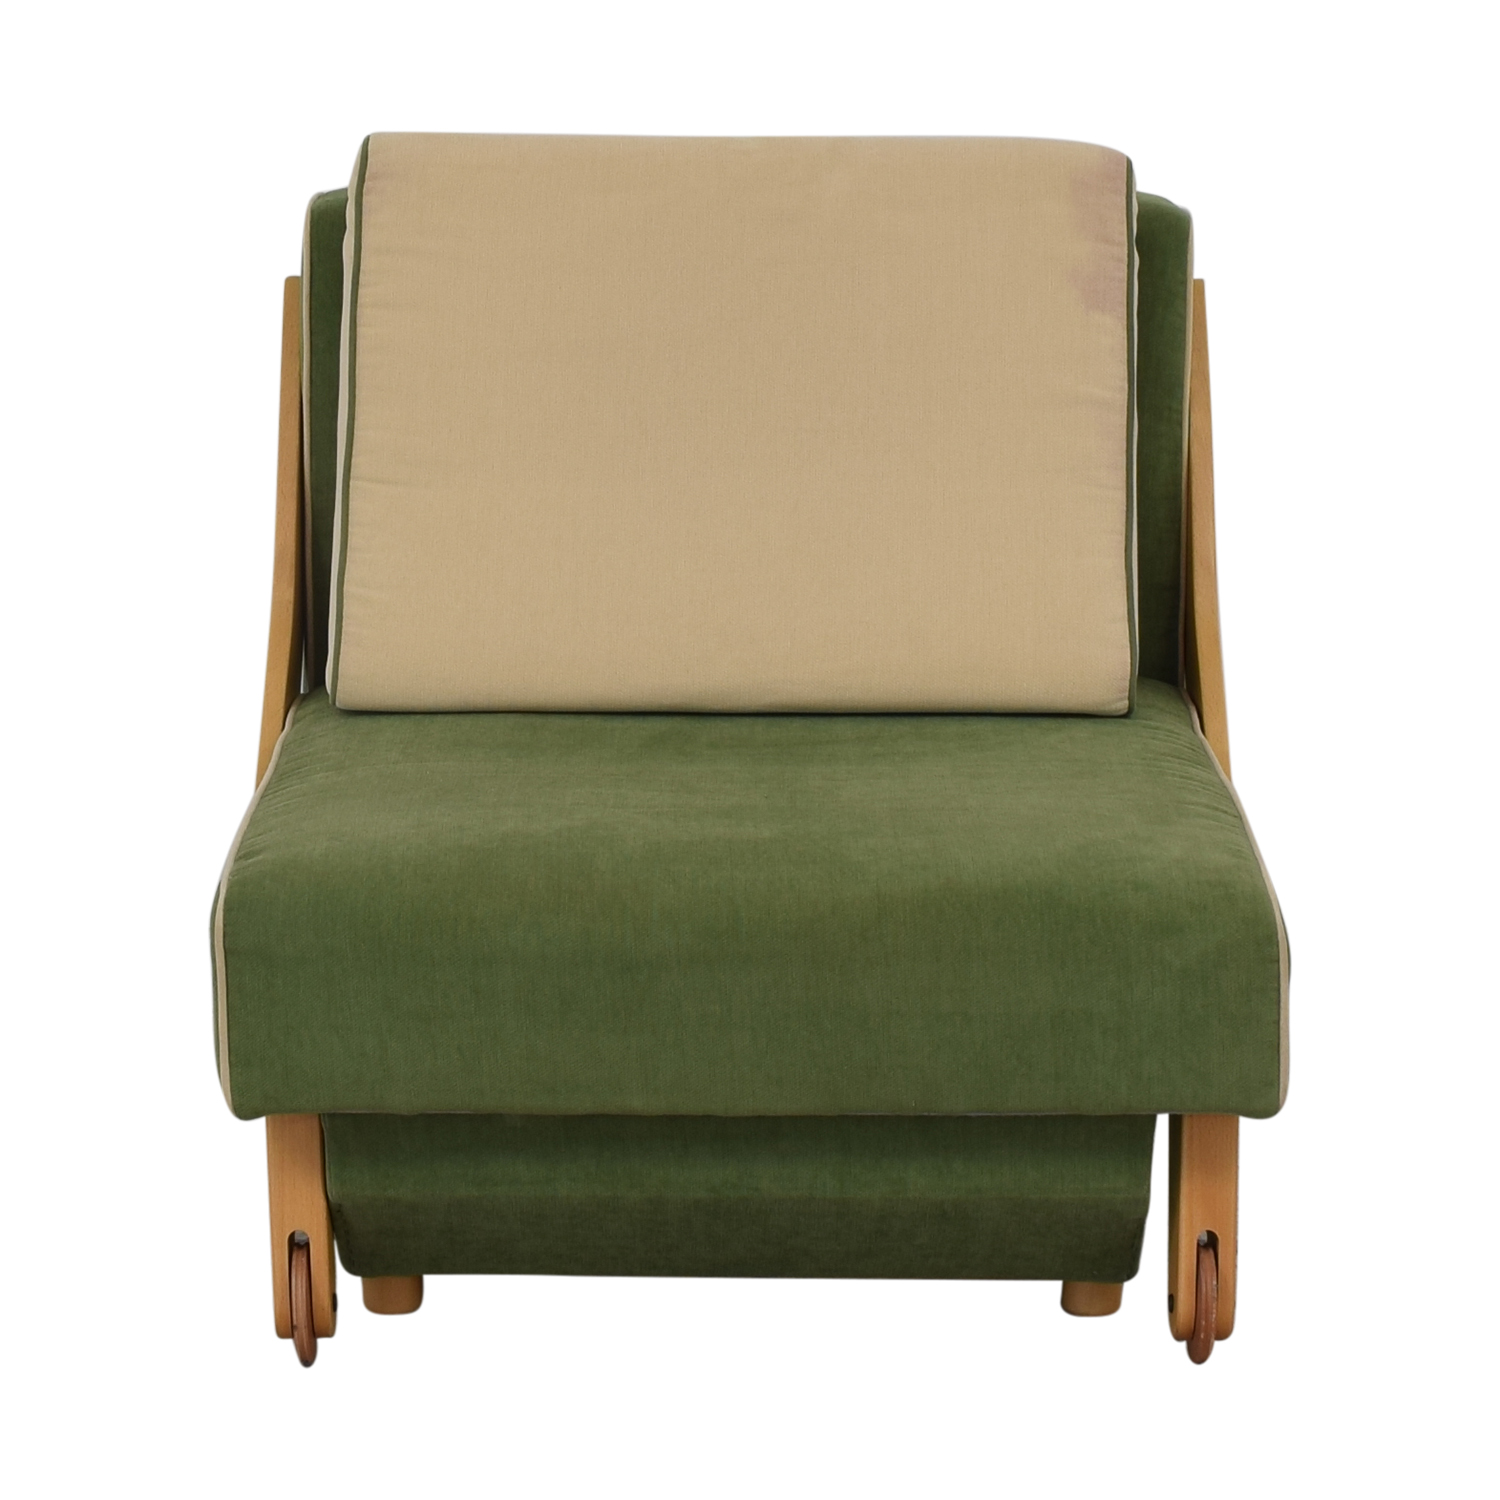 Custom Accent Chair with Storage dimensions